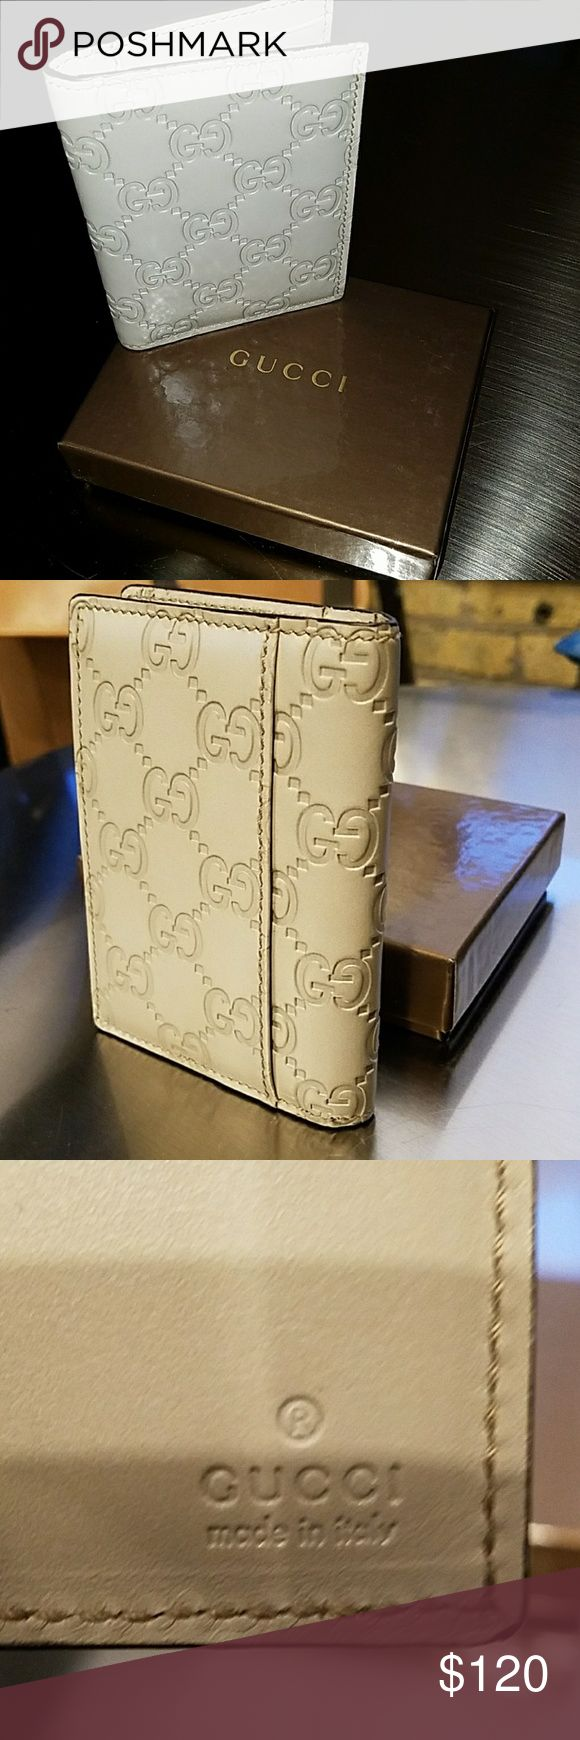 Gucci Signature ivory card case Fold over card case made in Gucci Signature leather with a defined print. Gucci Accessories Key & Card Holders